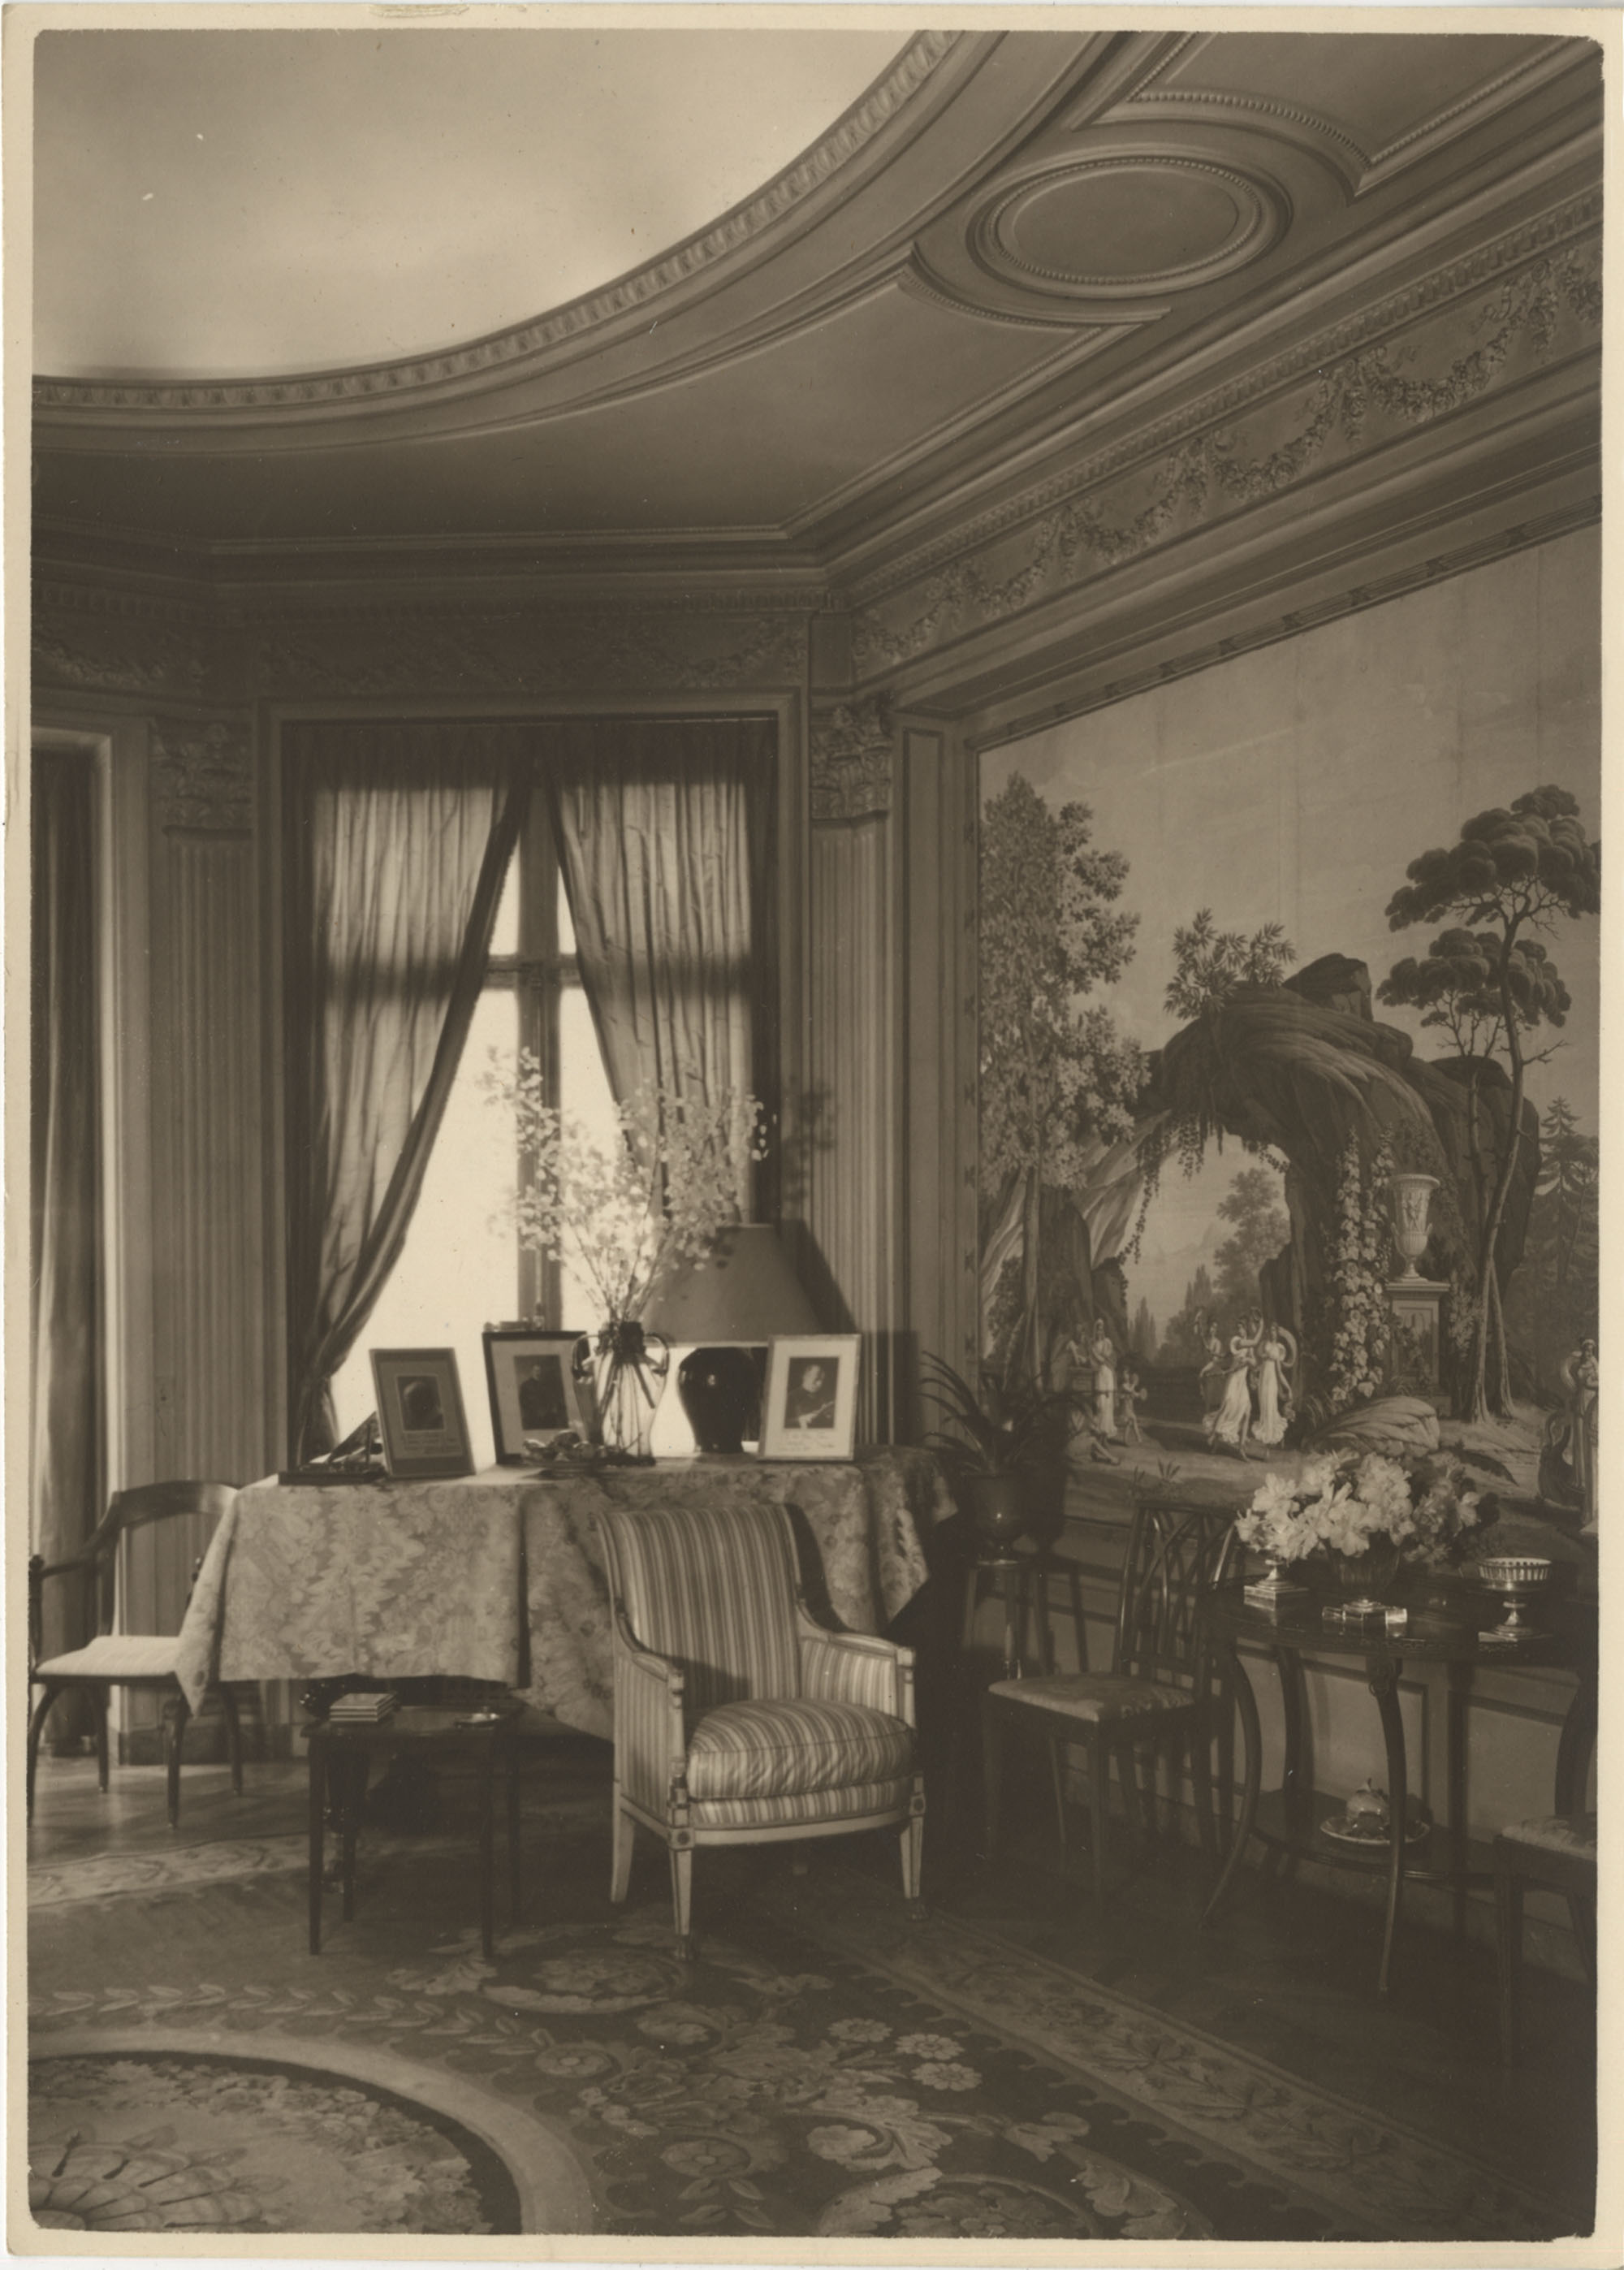 Directoire room' in the Royal Italian Consul in Sri Lanka, Photograph 1